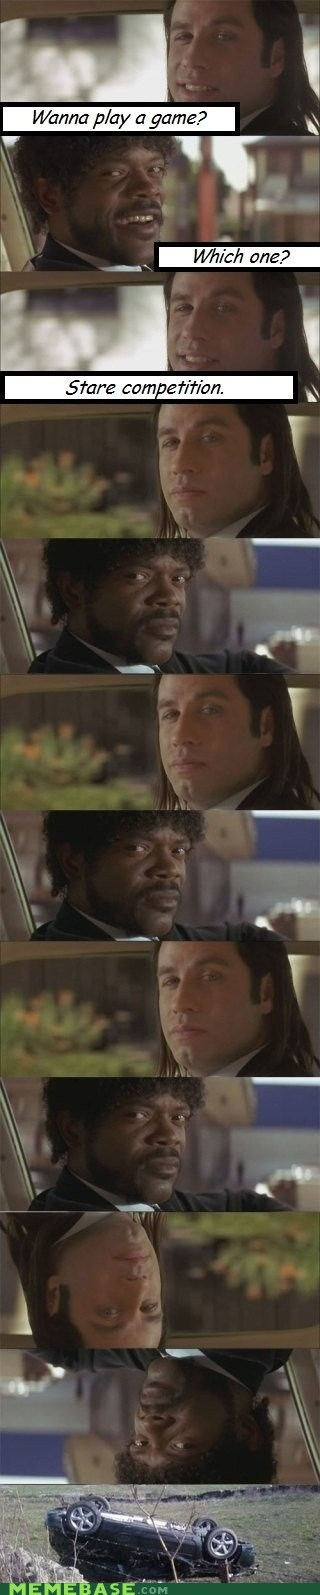 actor,car accident,celeb,john travolta,Movie,pulp fiction,Samuel L Jackson,stare contest